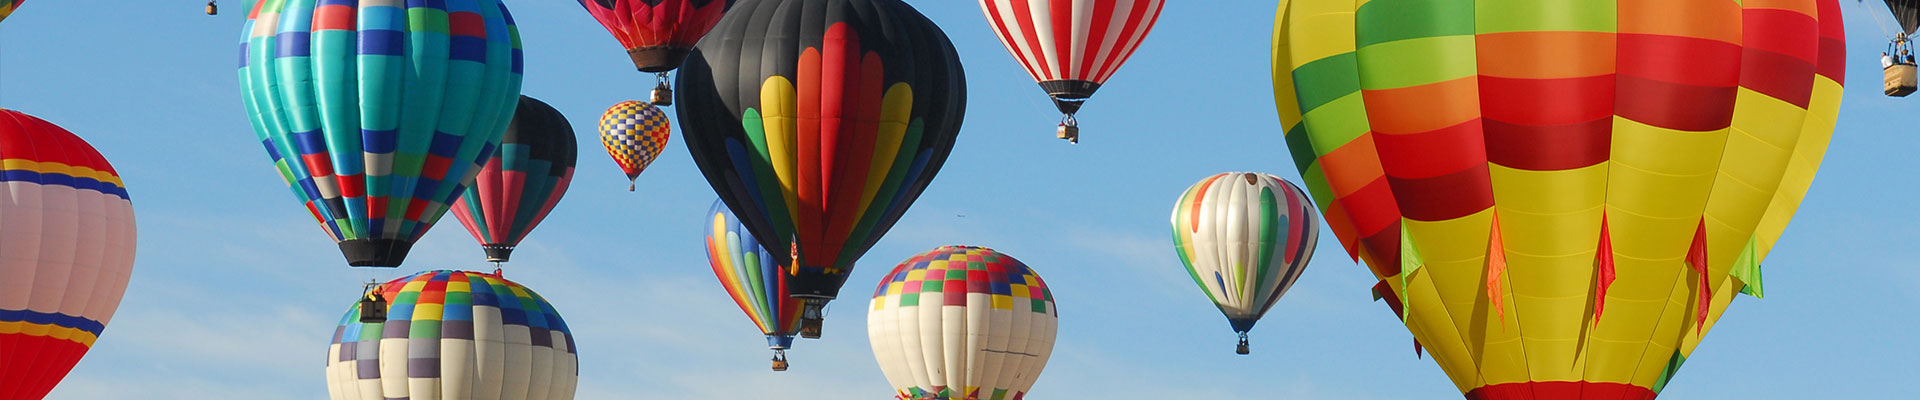 Fantasy RV Tours: 5 Day Balloon Fiesta (05UABP-100820)